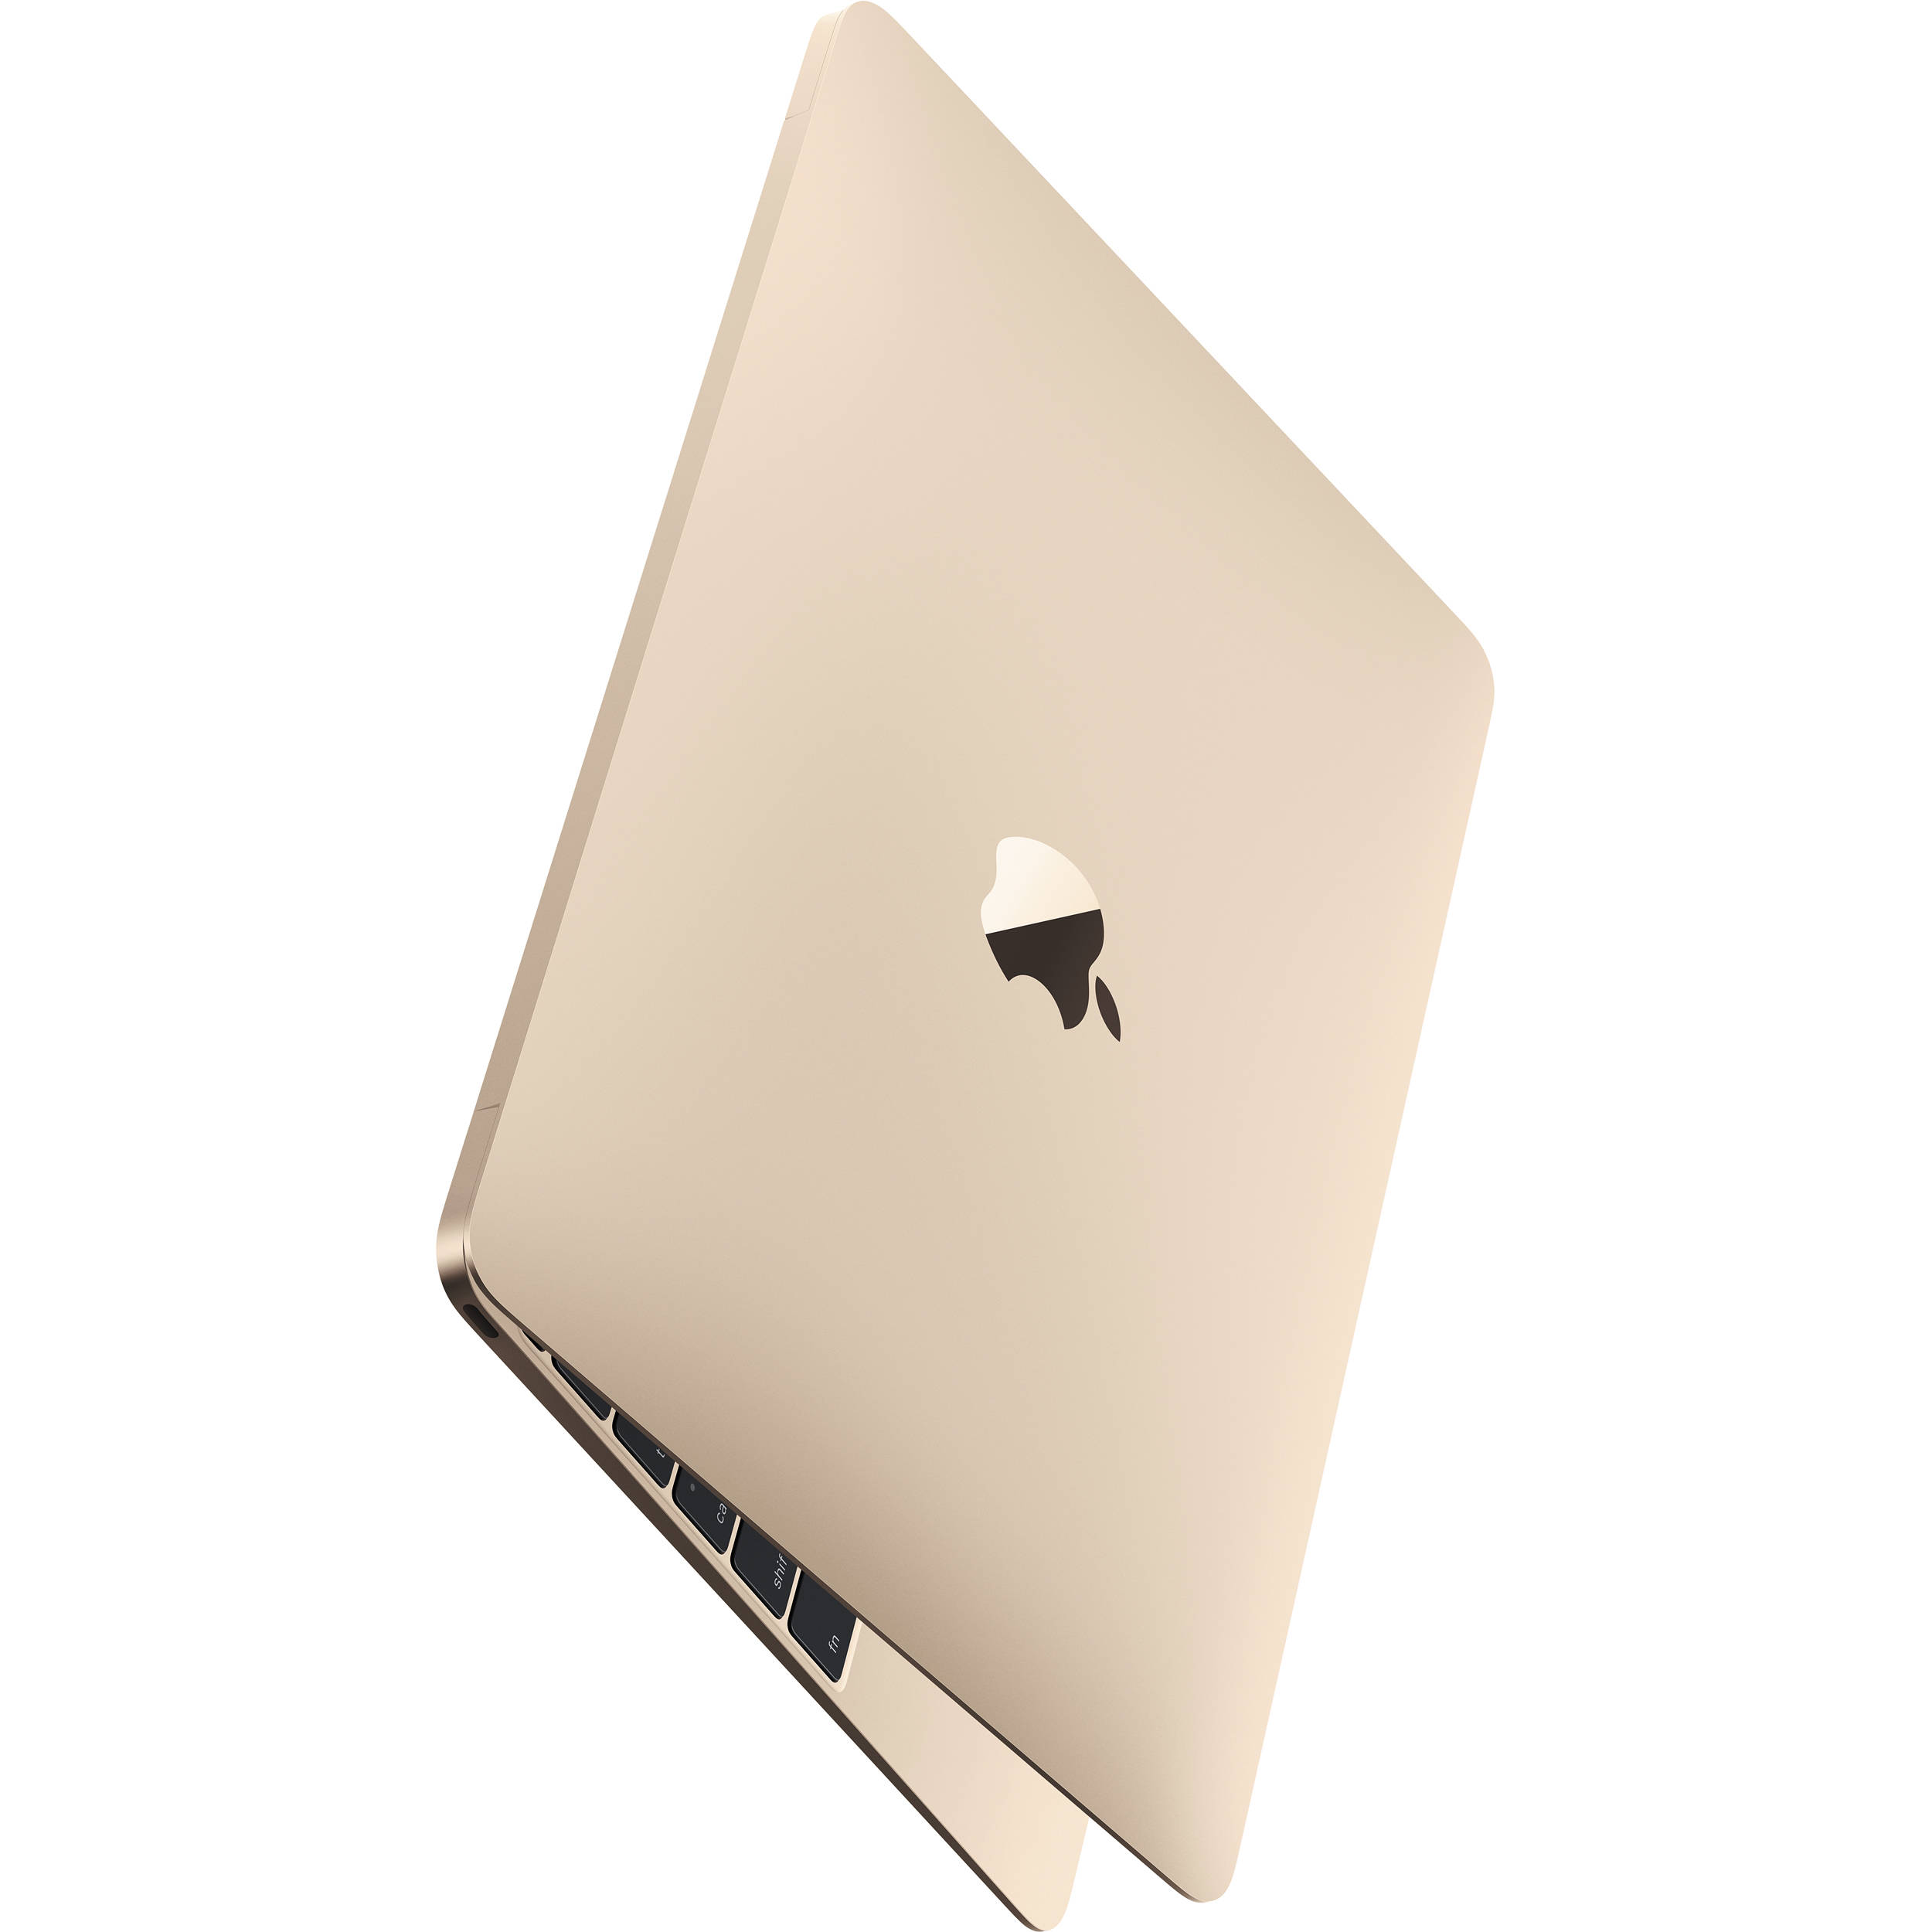 Apple 12 Quot Macbook Early 2015 Gold Mk4n2ll A B Amp H Photo